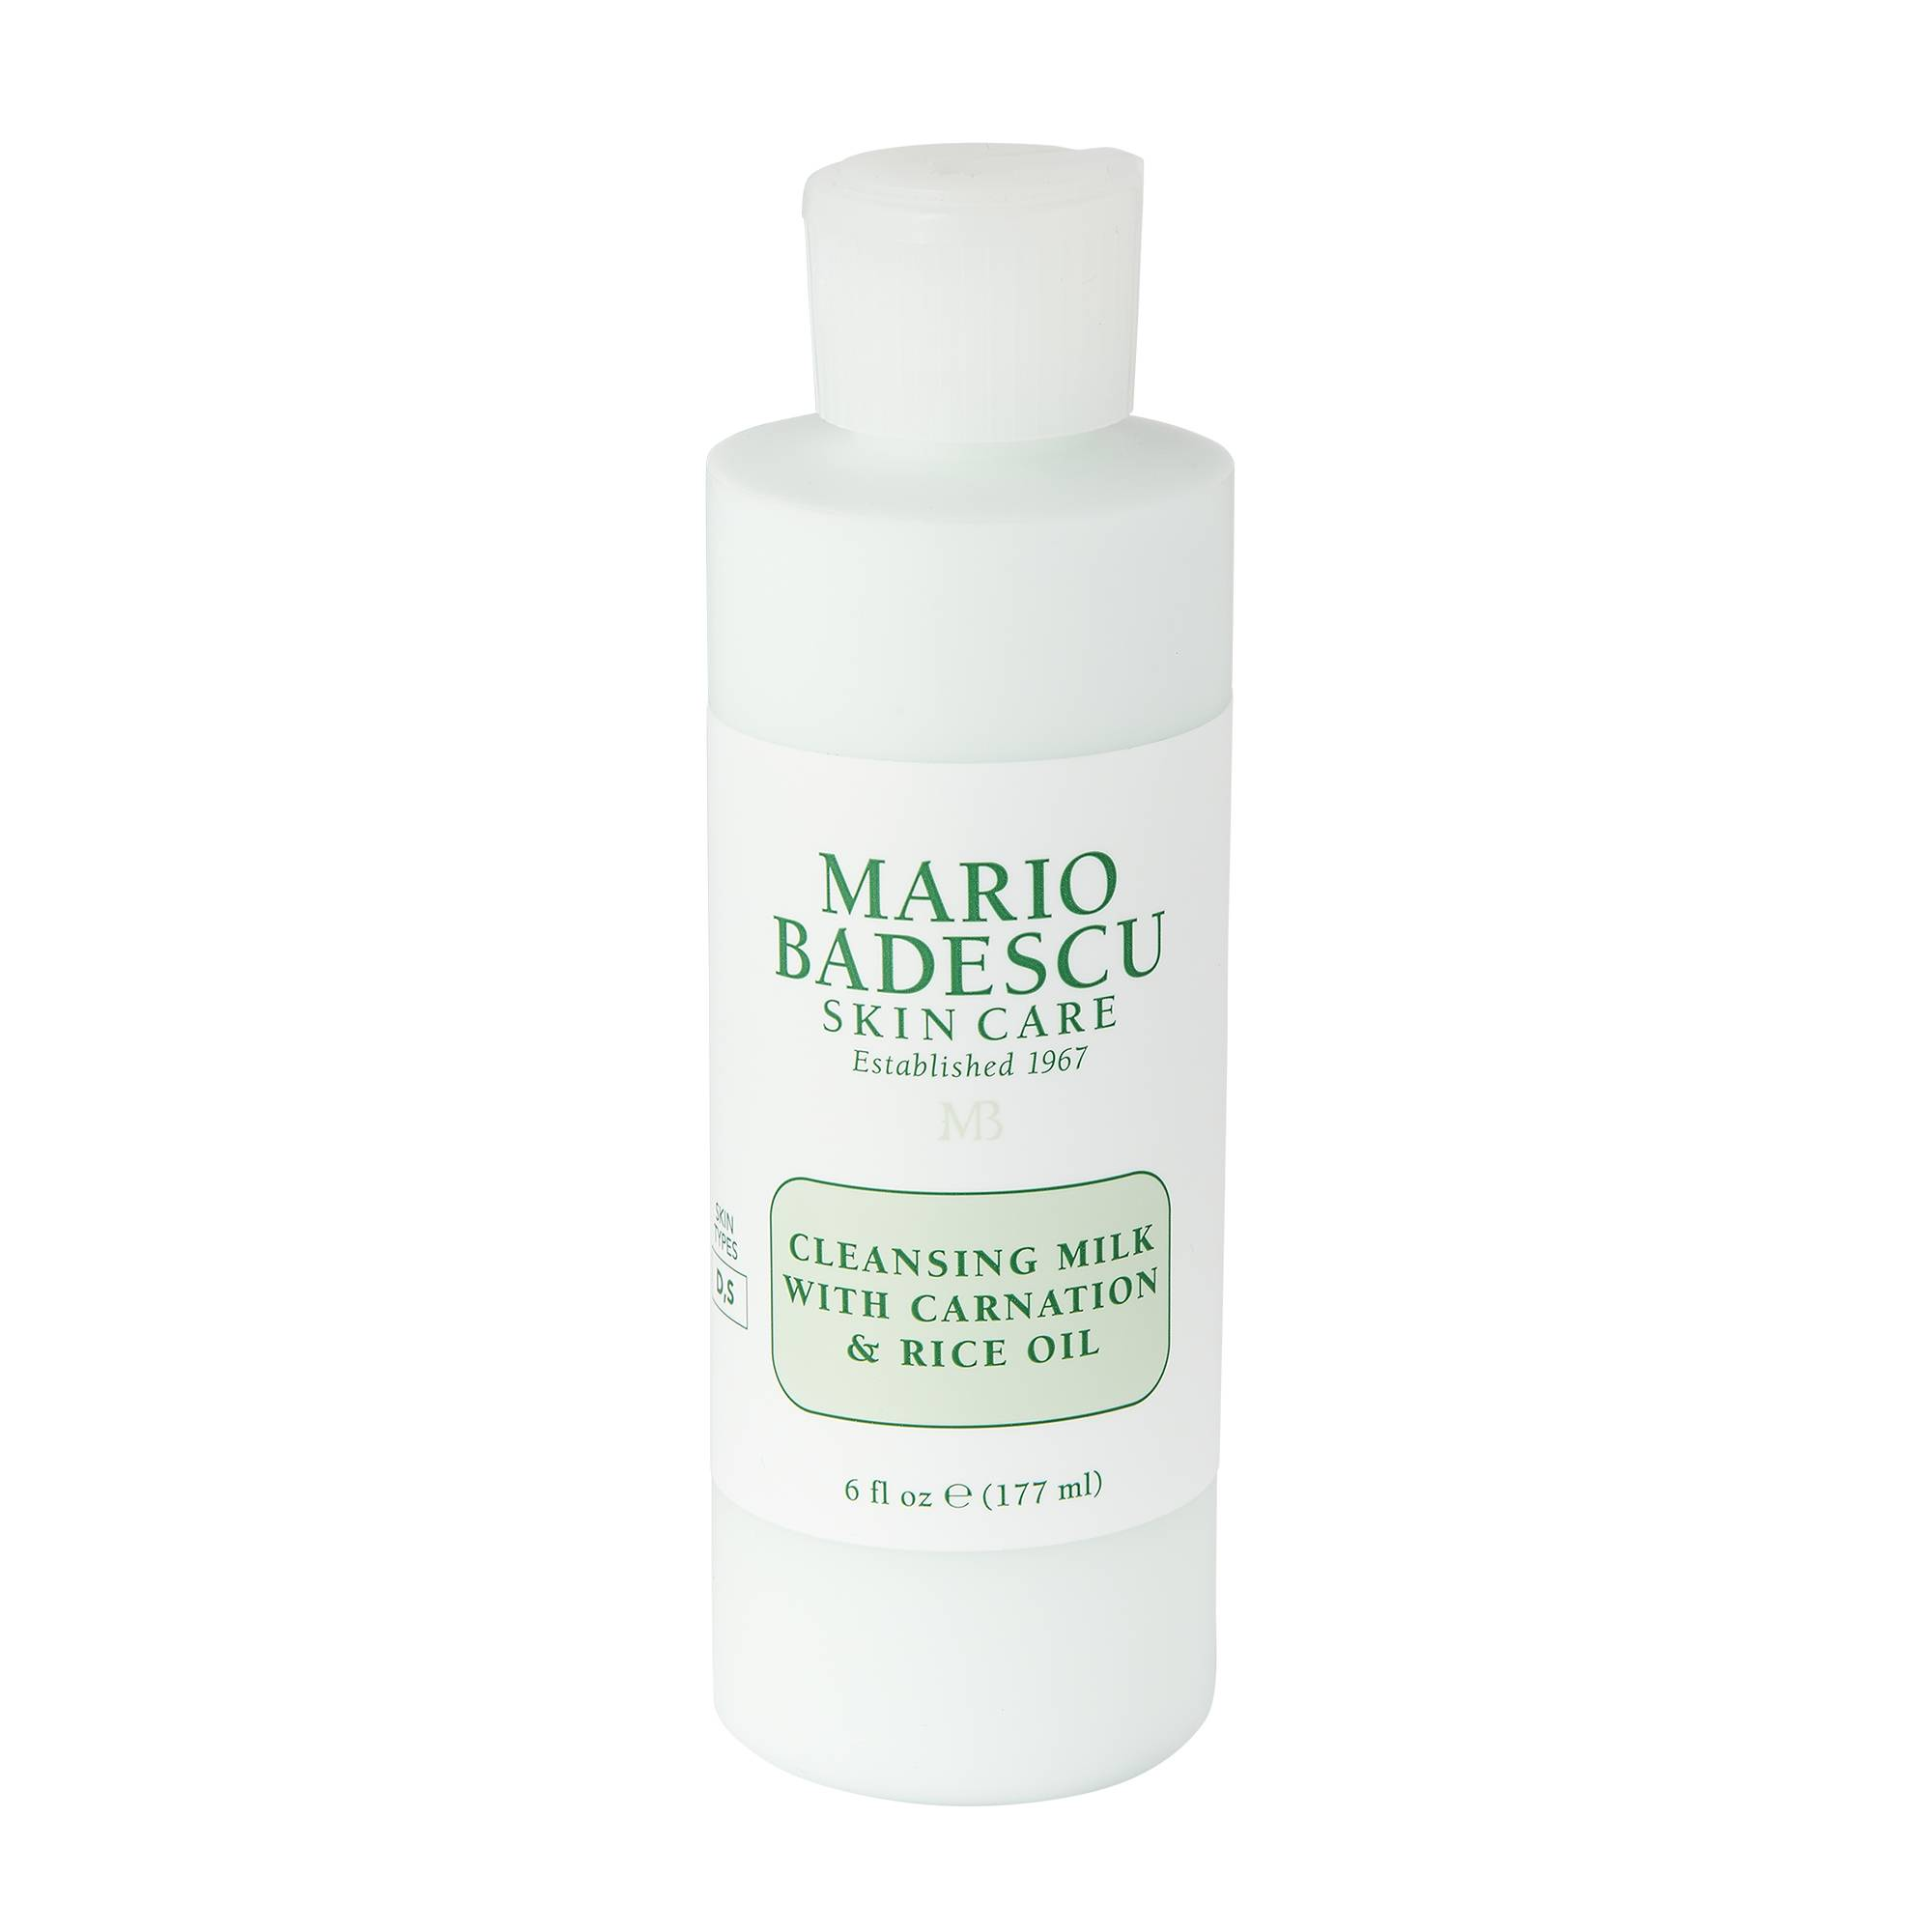 Mario Badescu Cleansing Milk With Carnation & Rice Oil 117ml